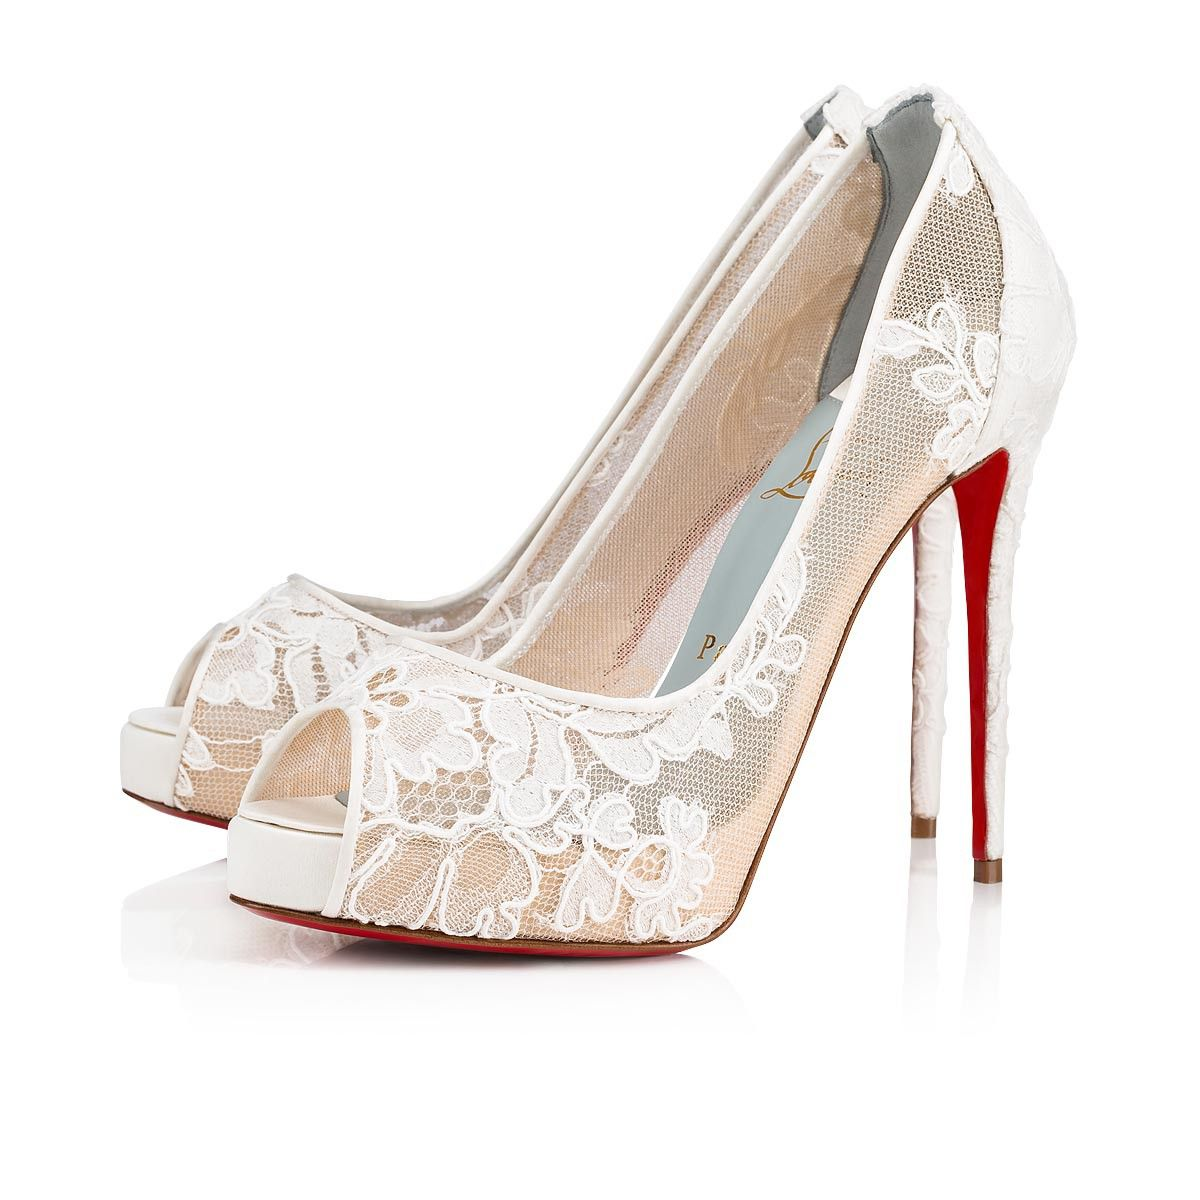 fcd99025c277 With a unique take on Fetish Peep, Christian Louboutin's Very Lace  epitomizes modern-day